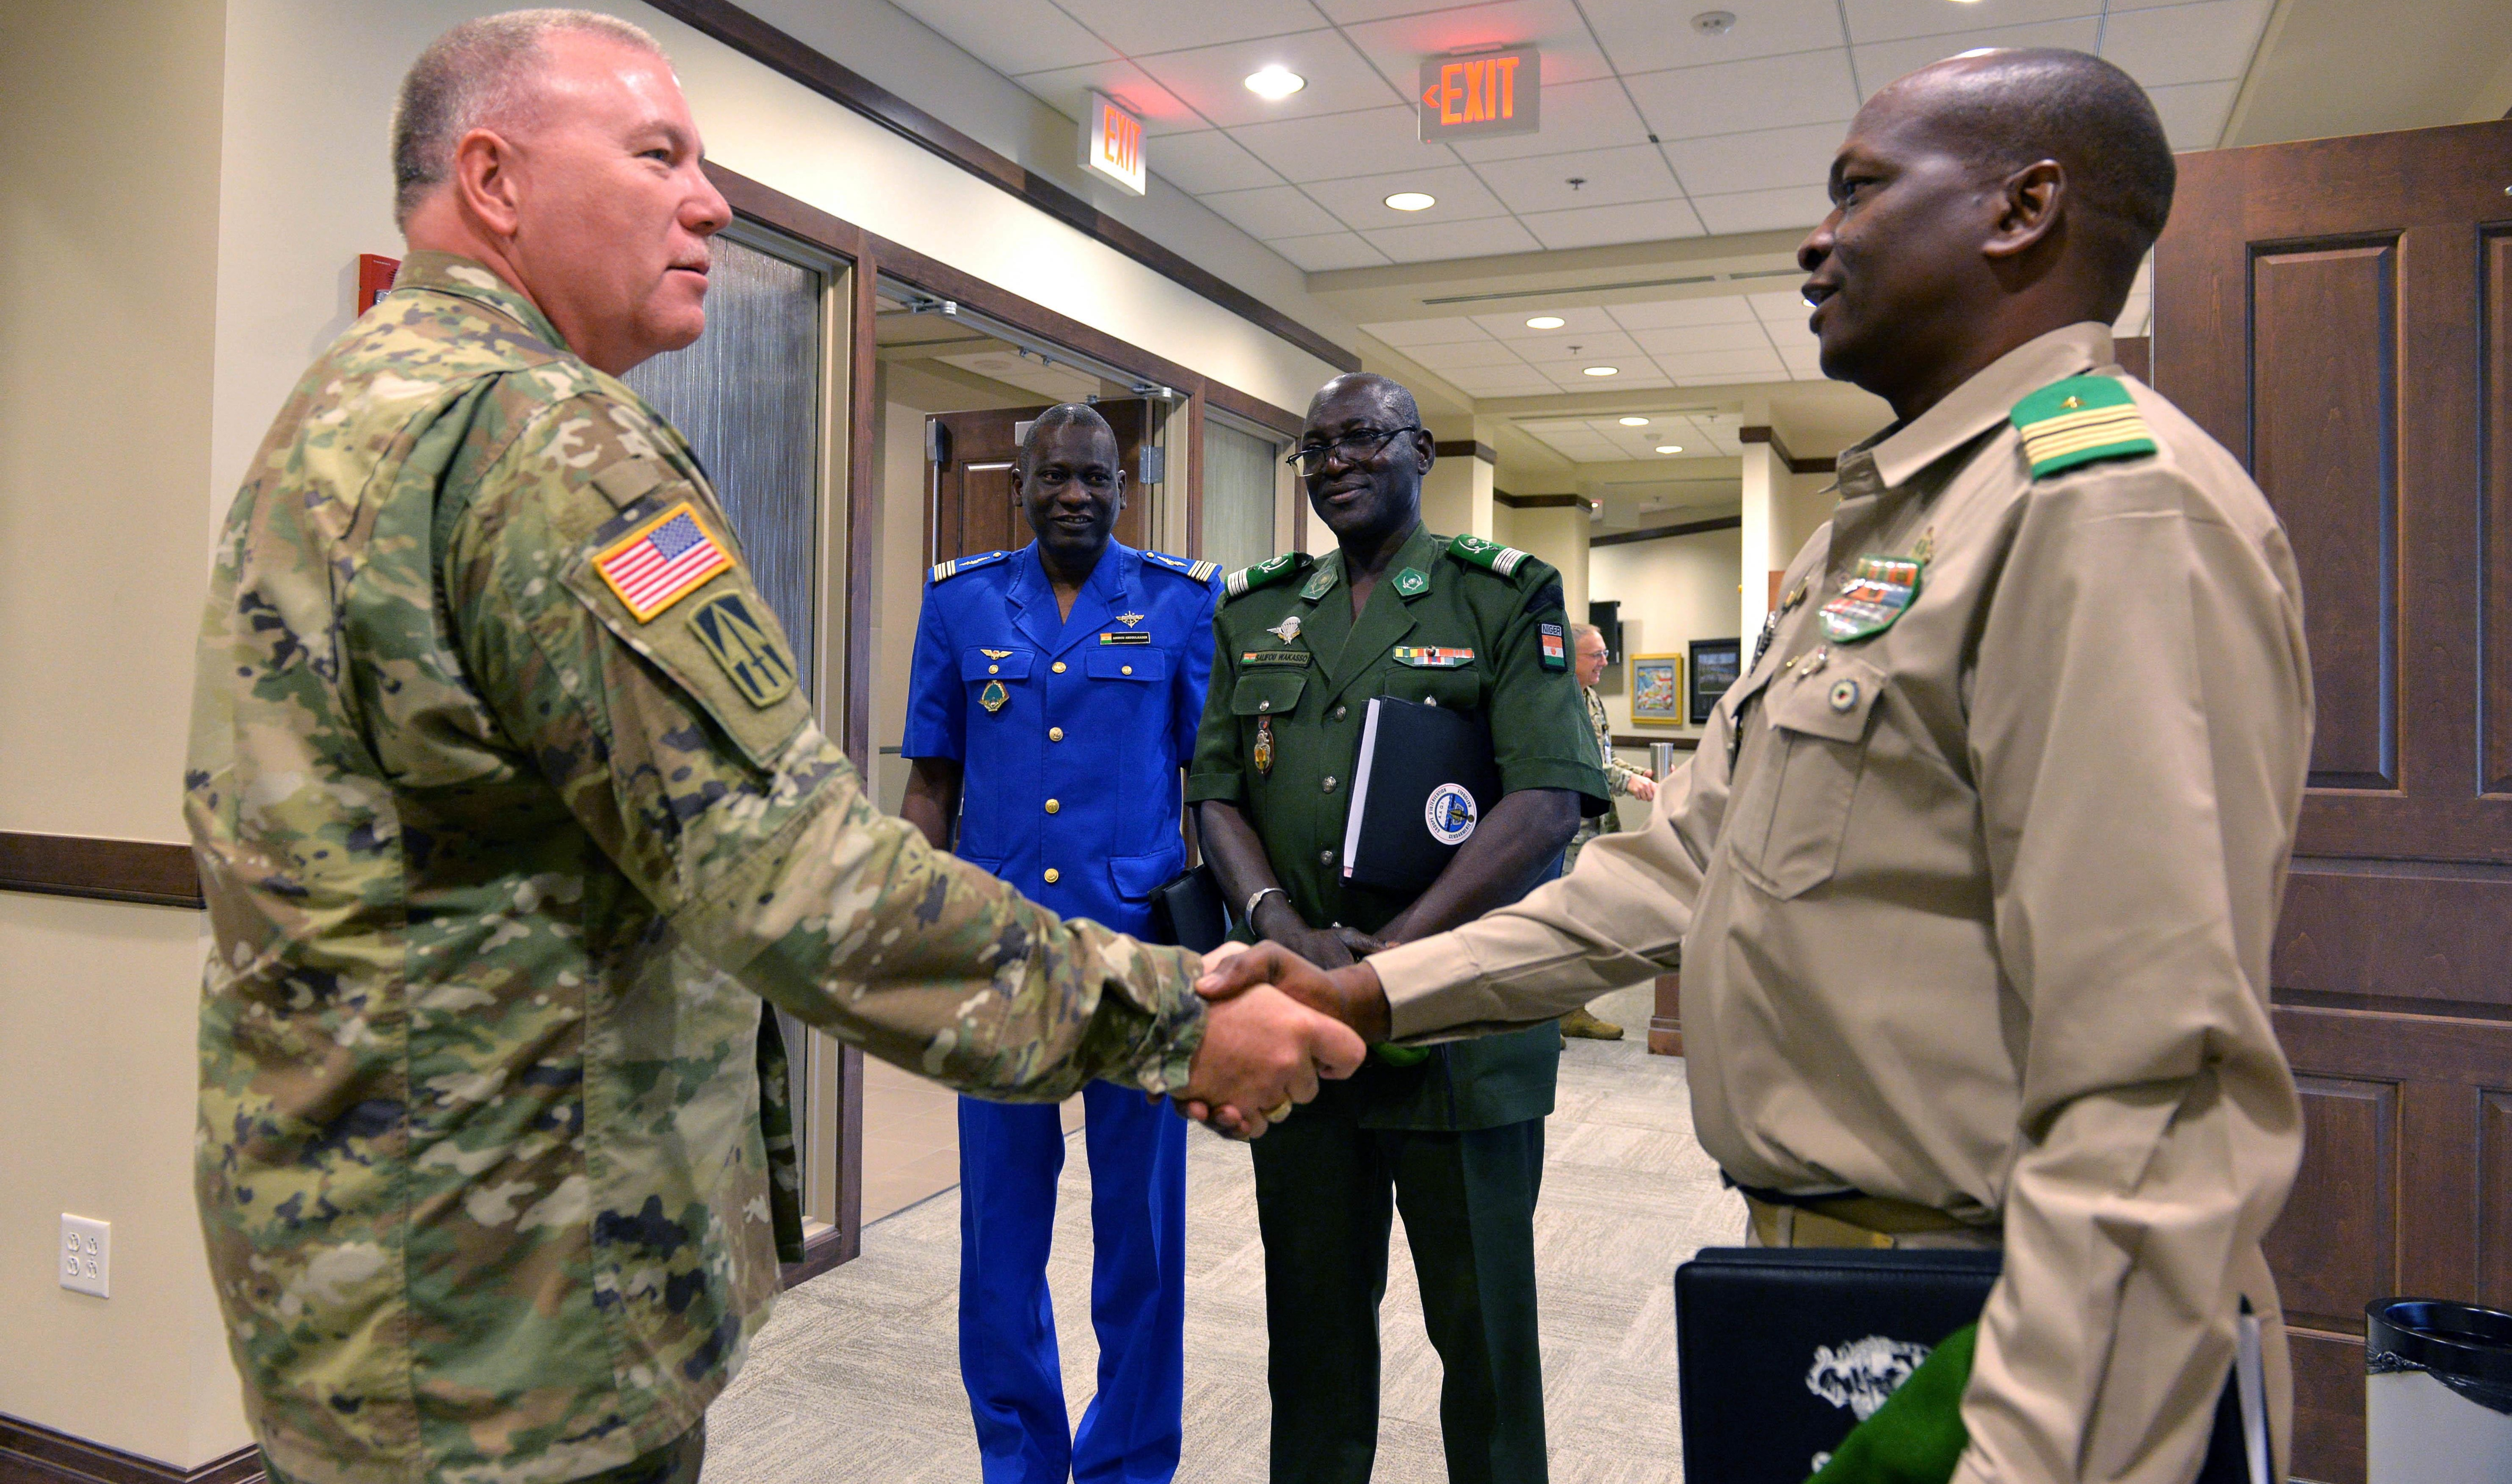 Indiana National Guard's Director of Joint Staff Brig. Gen. Ronald A. Westfall greats Colonel-Major Soumana Kalkoye dit Fodo the Chief of Bureau of Studies for the Nigerien Ministry of Defense. Photo by Sgt. 1st Class Lasima O. Packett